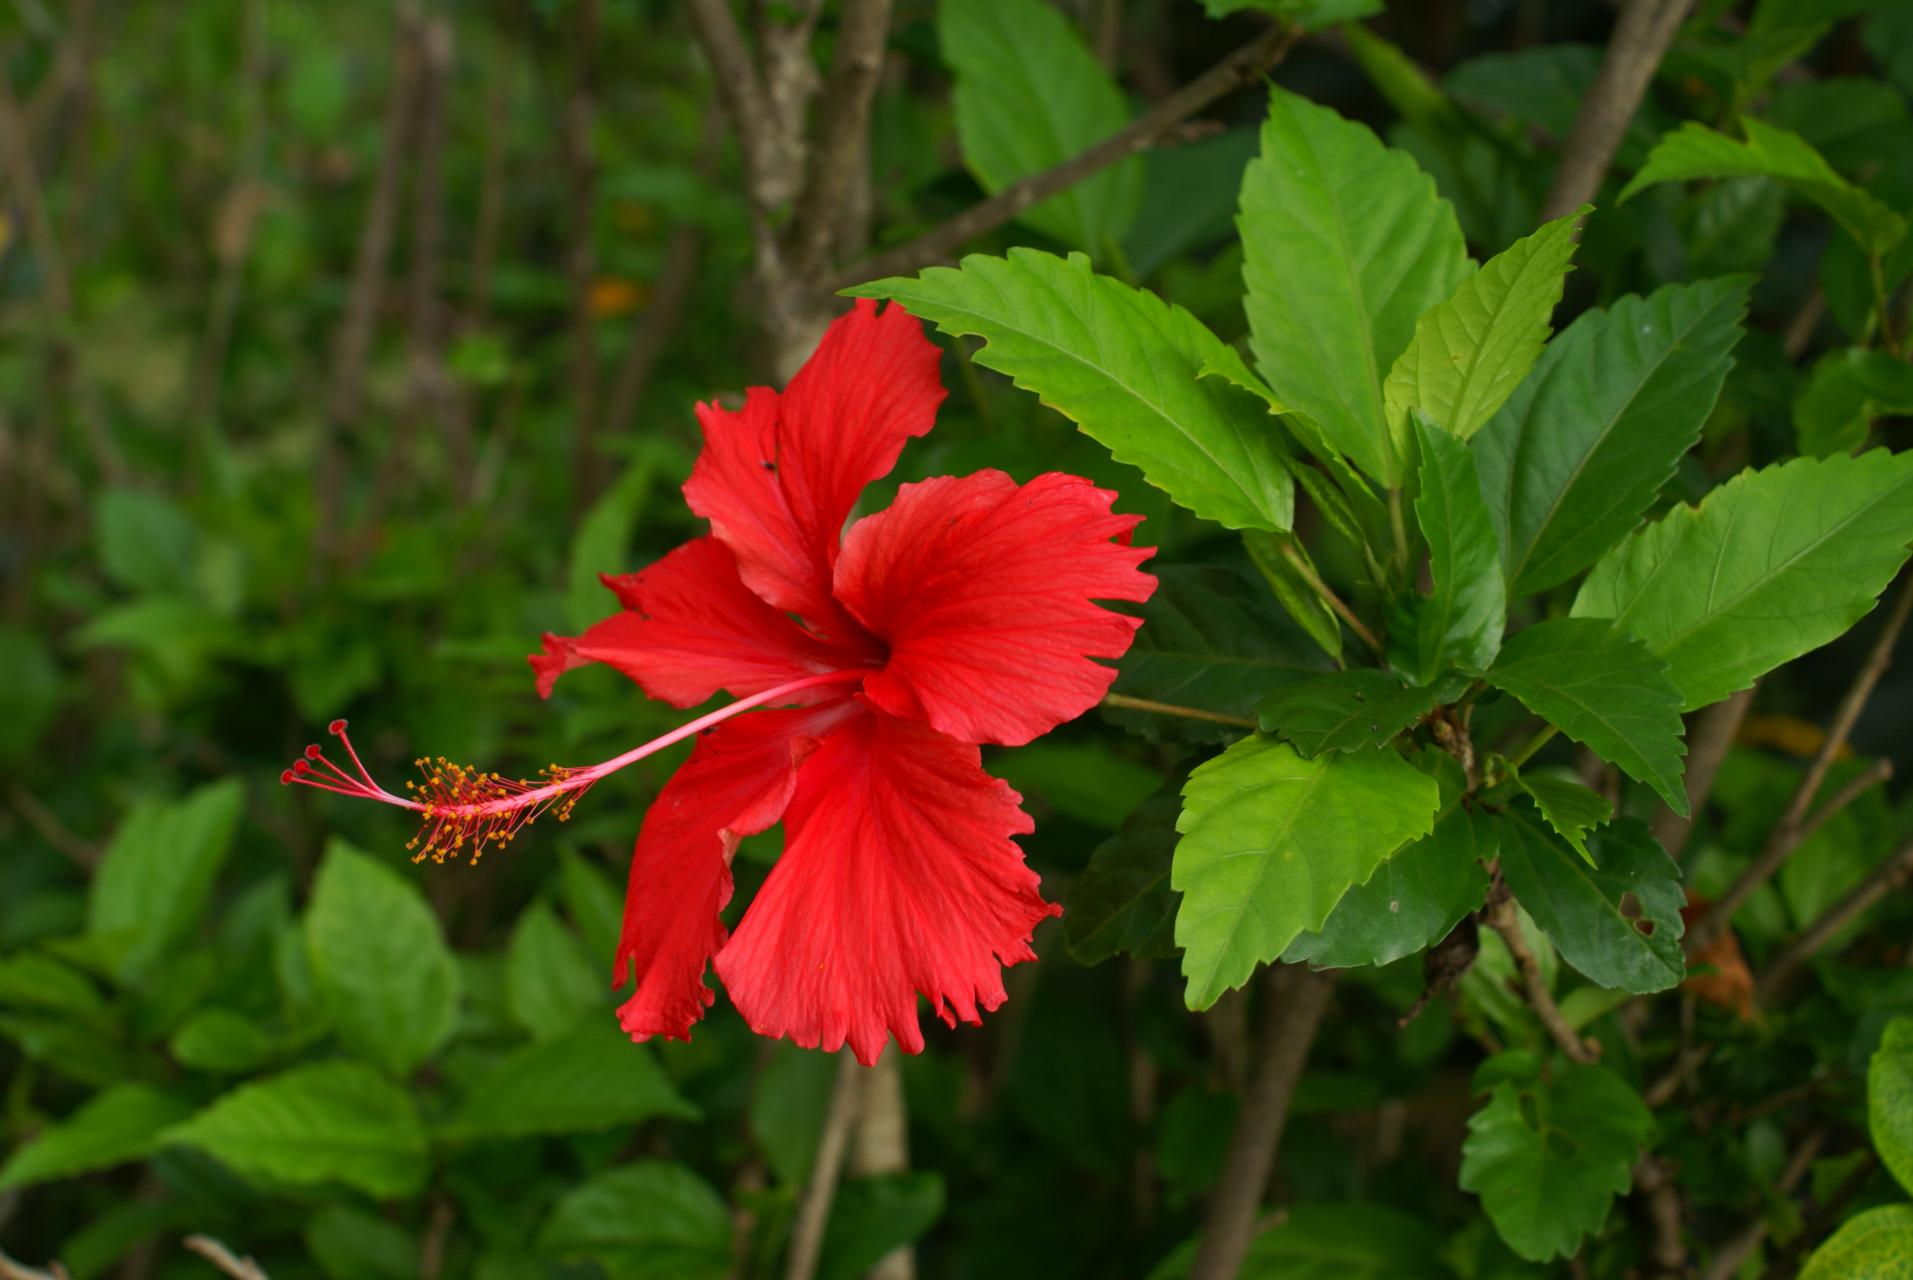 Hibiscus rosa sinensis china rose green fingers gfinger is the flower color red to dark red bloom time in summer and autumn description hibiscus rosa sinensis is a bushy evergreen shrub or small tree izmirmasajfo Image collections